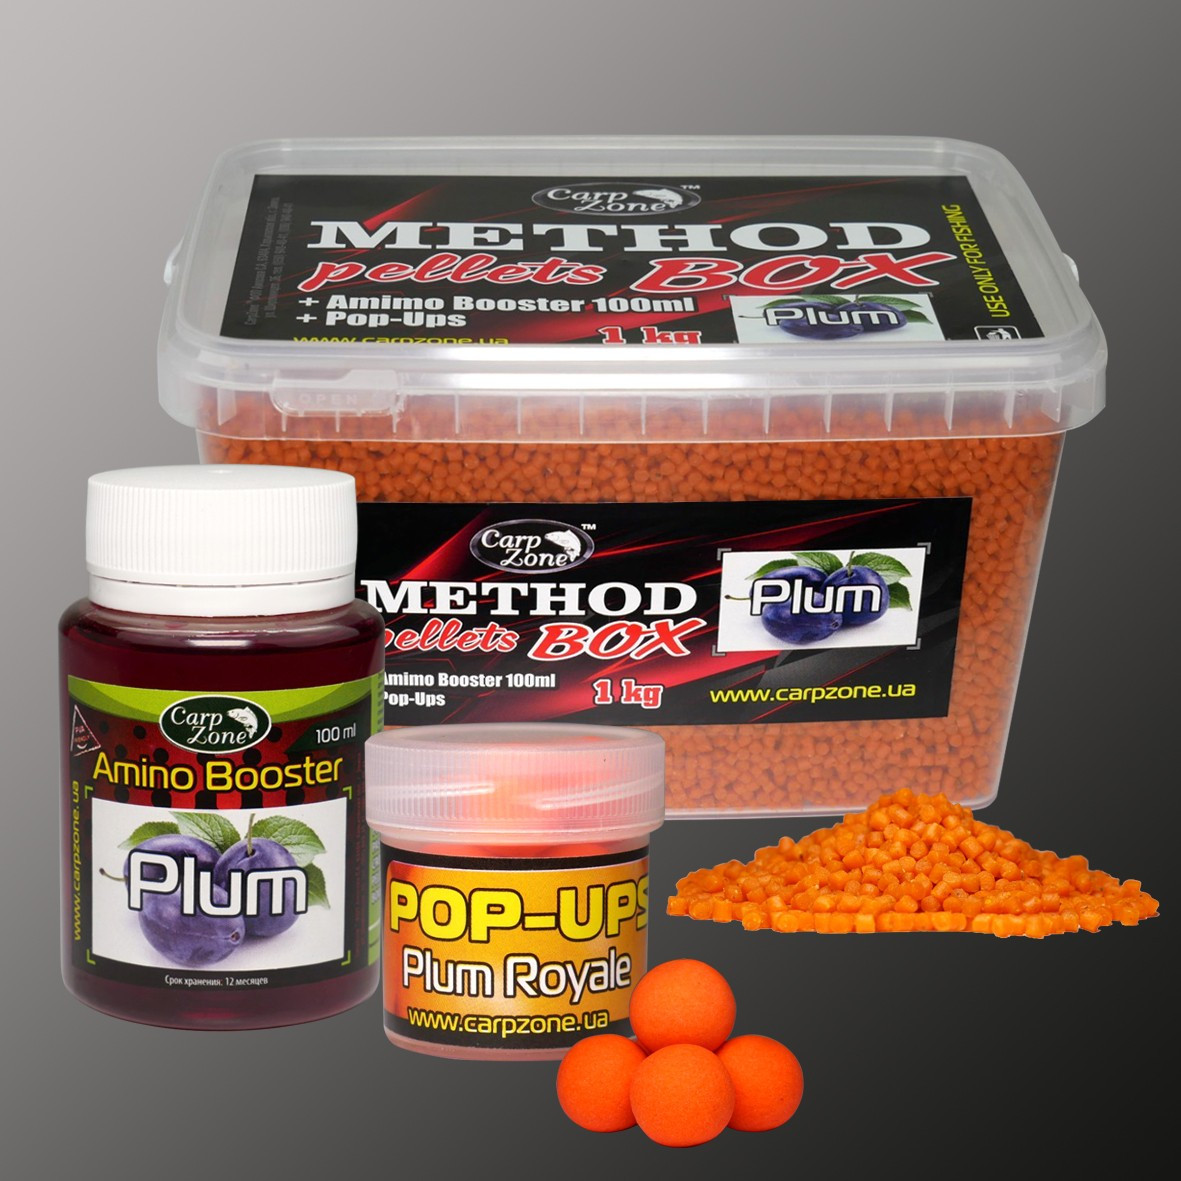 Набор Method Pellets Box Plum (Слива) 3mm/1kg + Amino Booster 100ml + Pop-Ups 10mm/15pc